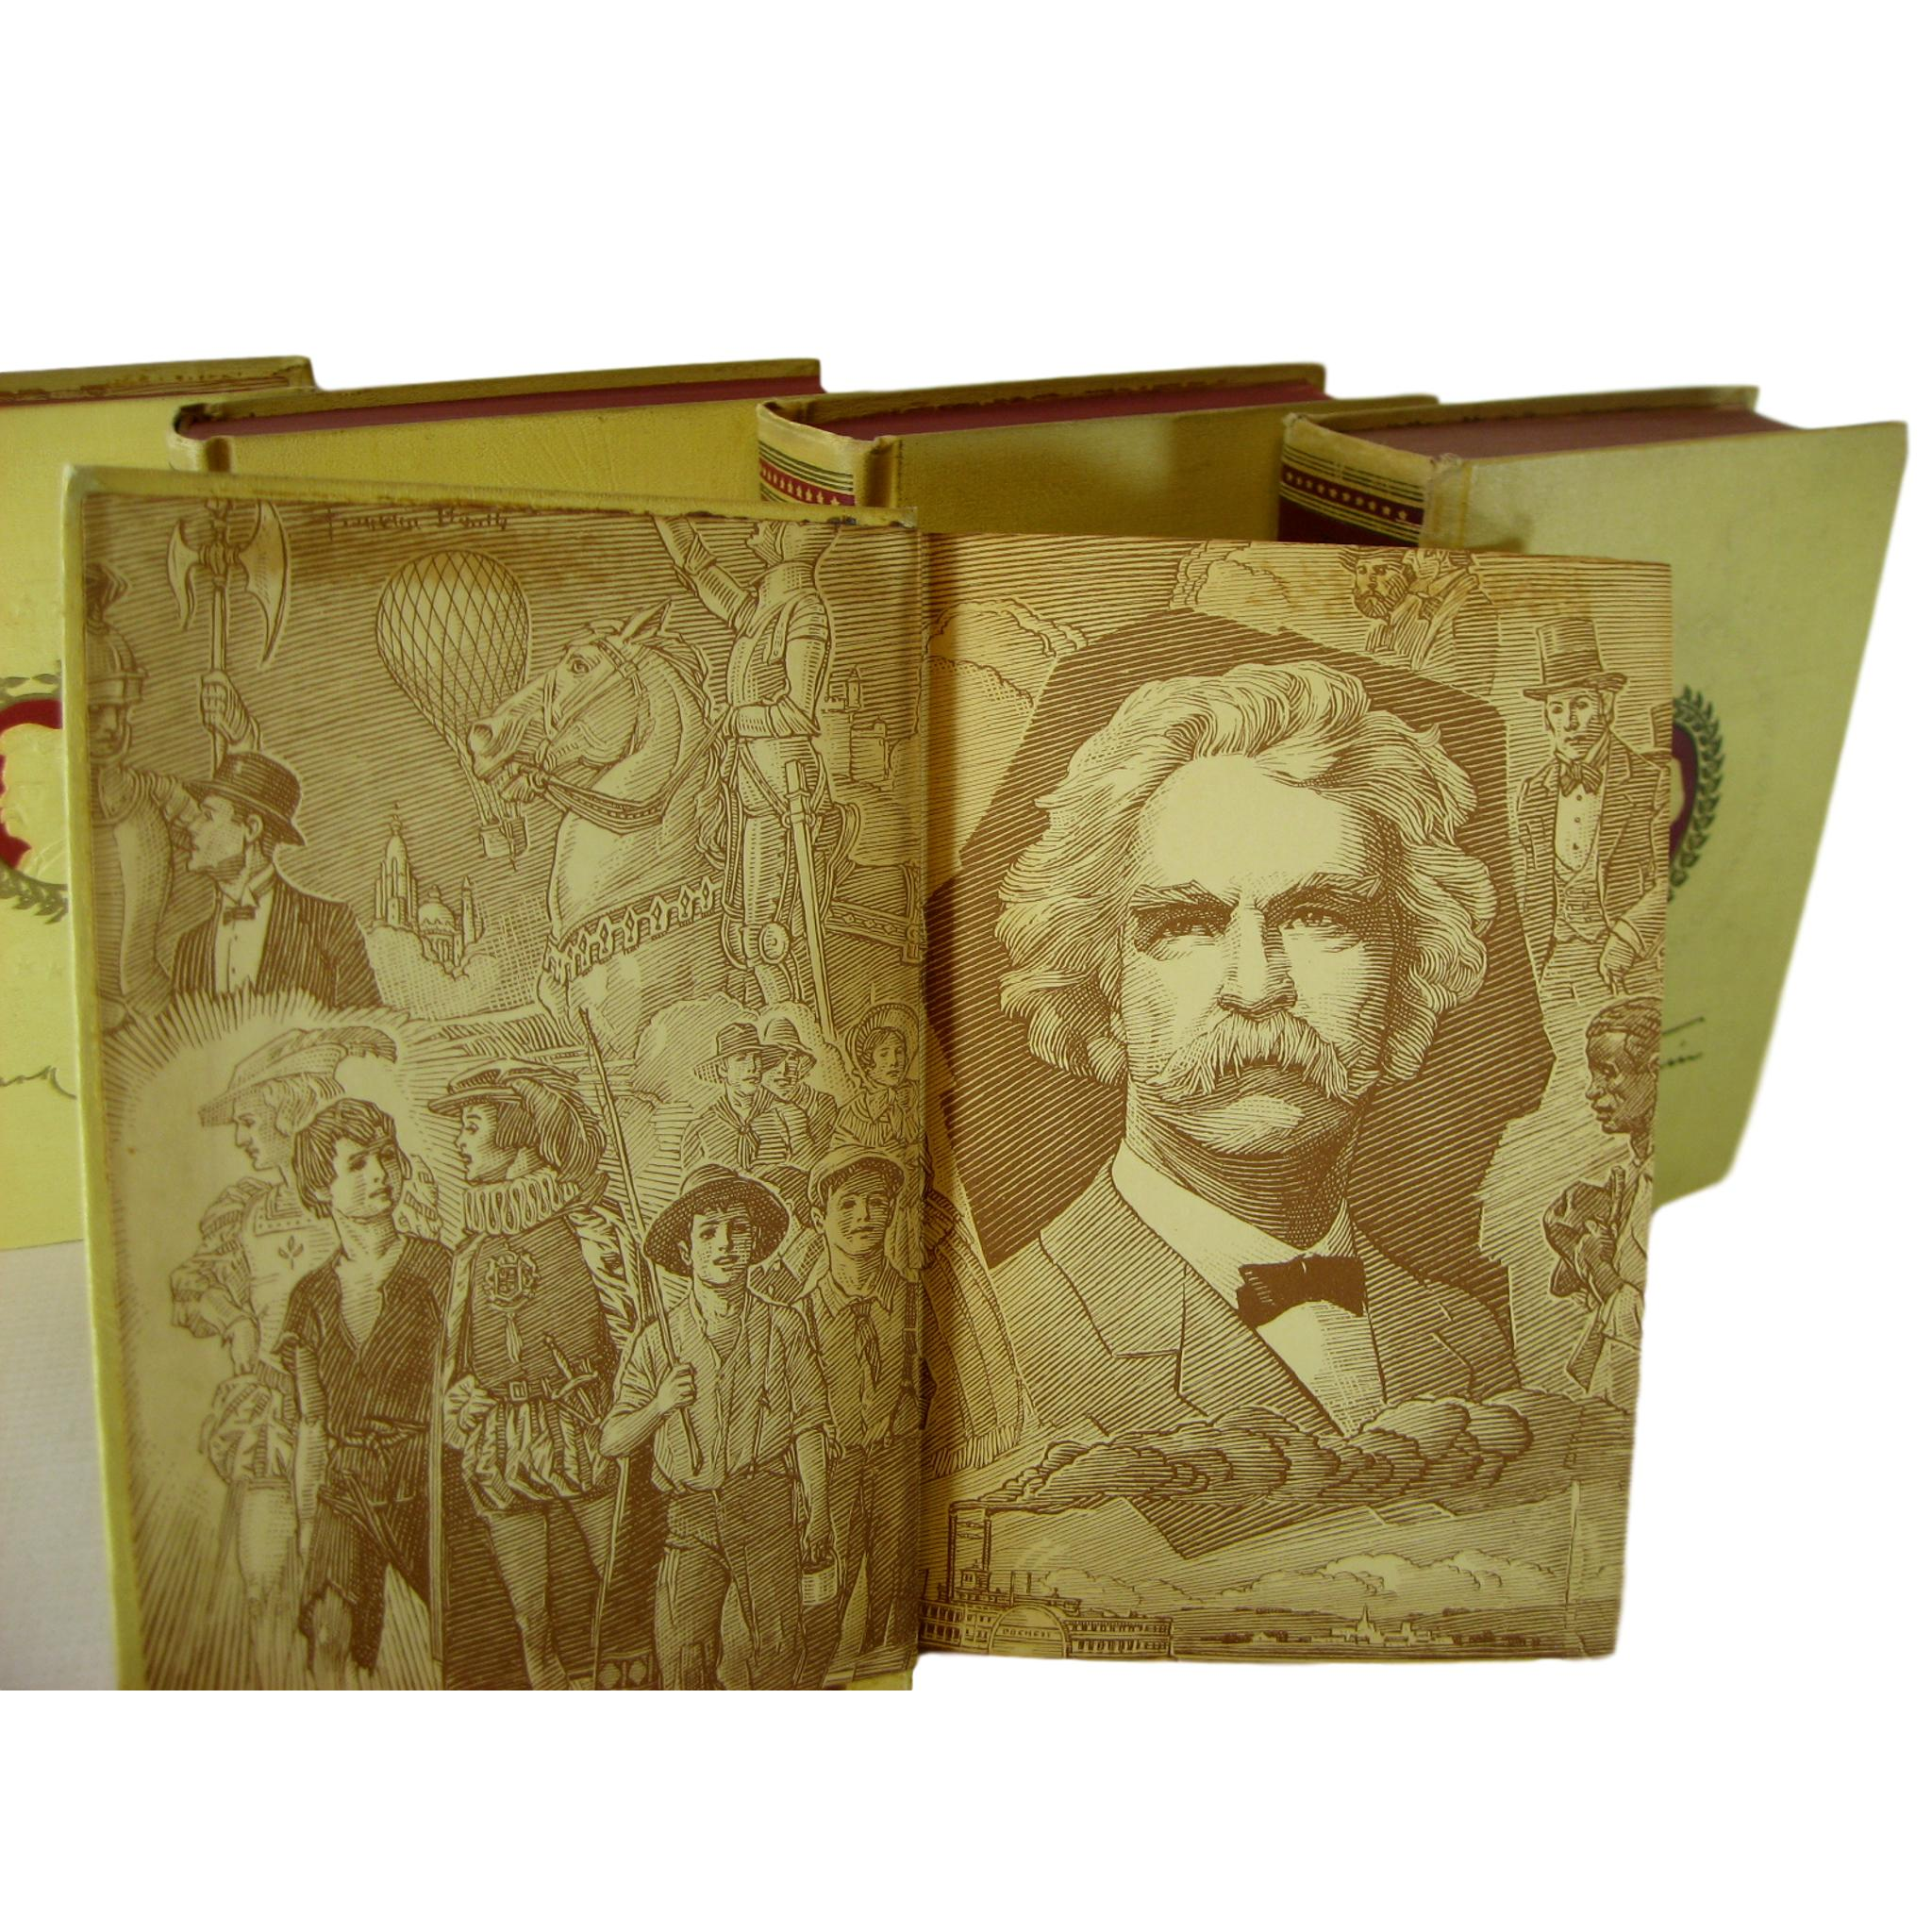 Mark Twain Classics, Decorative Books for Interior Design, S/5 - Decades of Vintage